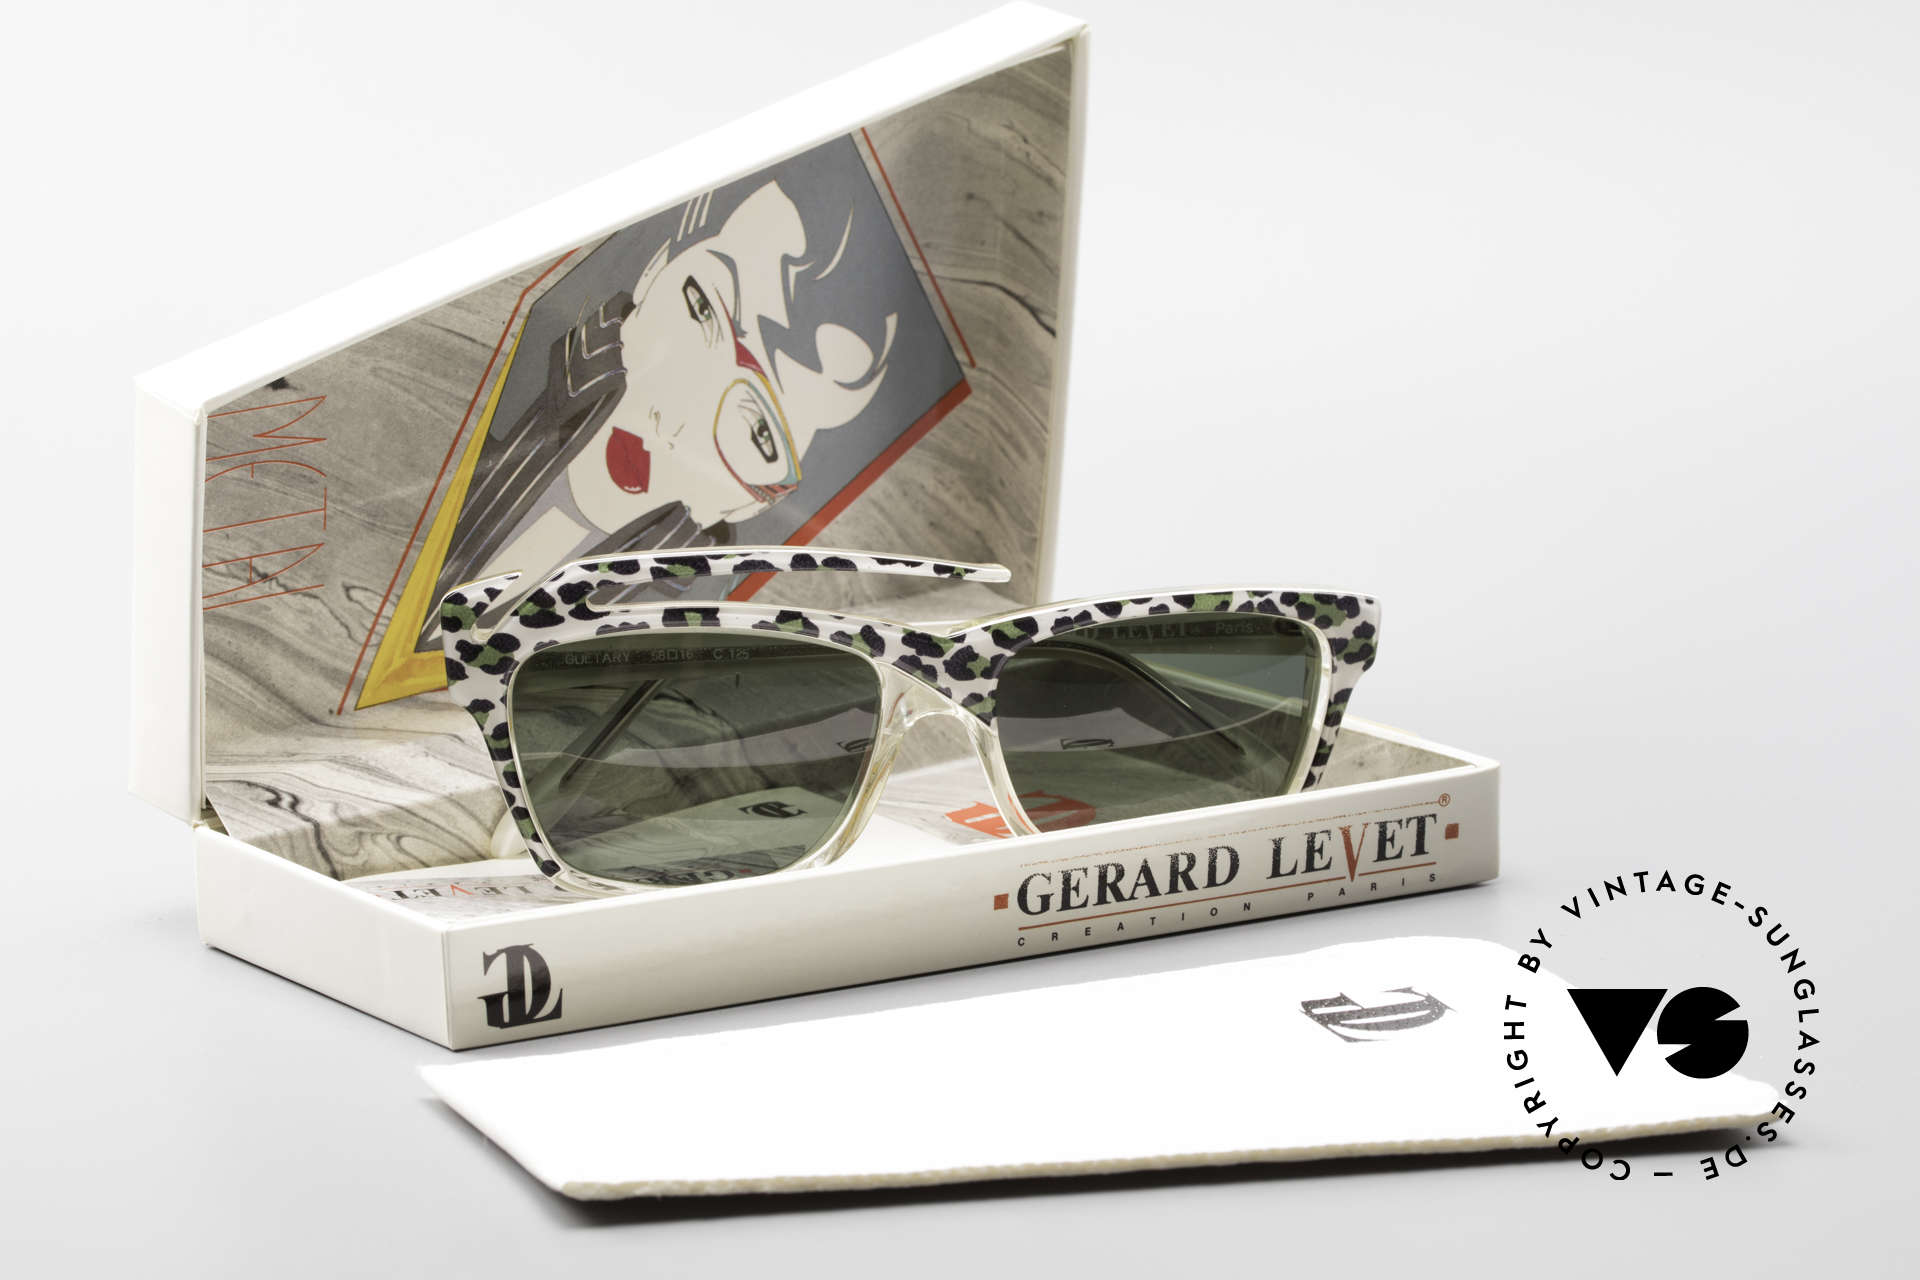 Gerard Levet Guetary A Tribute To Feminity, truly a unique frame design and pattern; No retro!, Made for Women